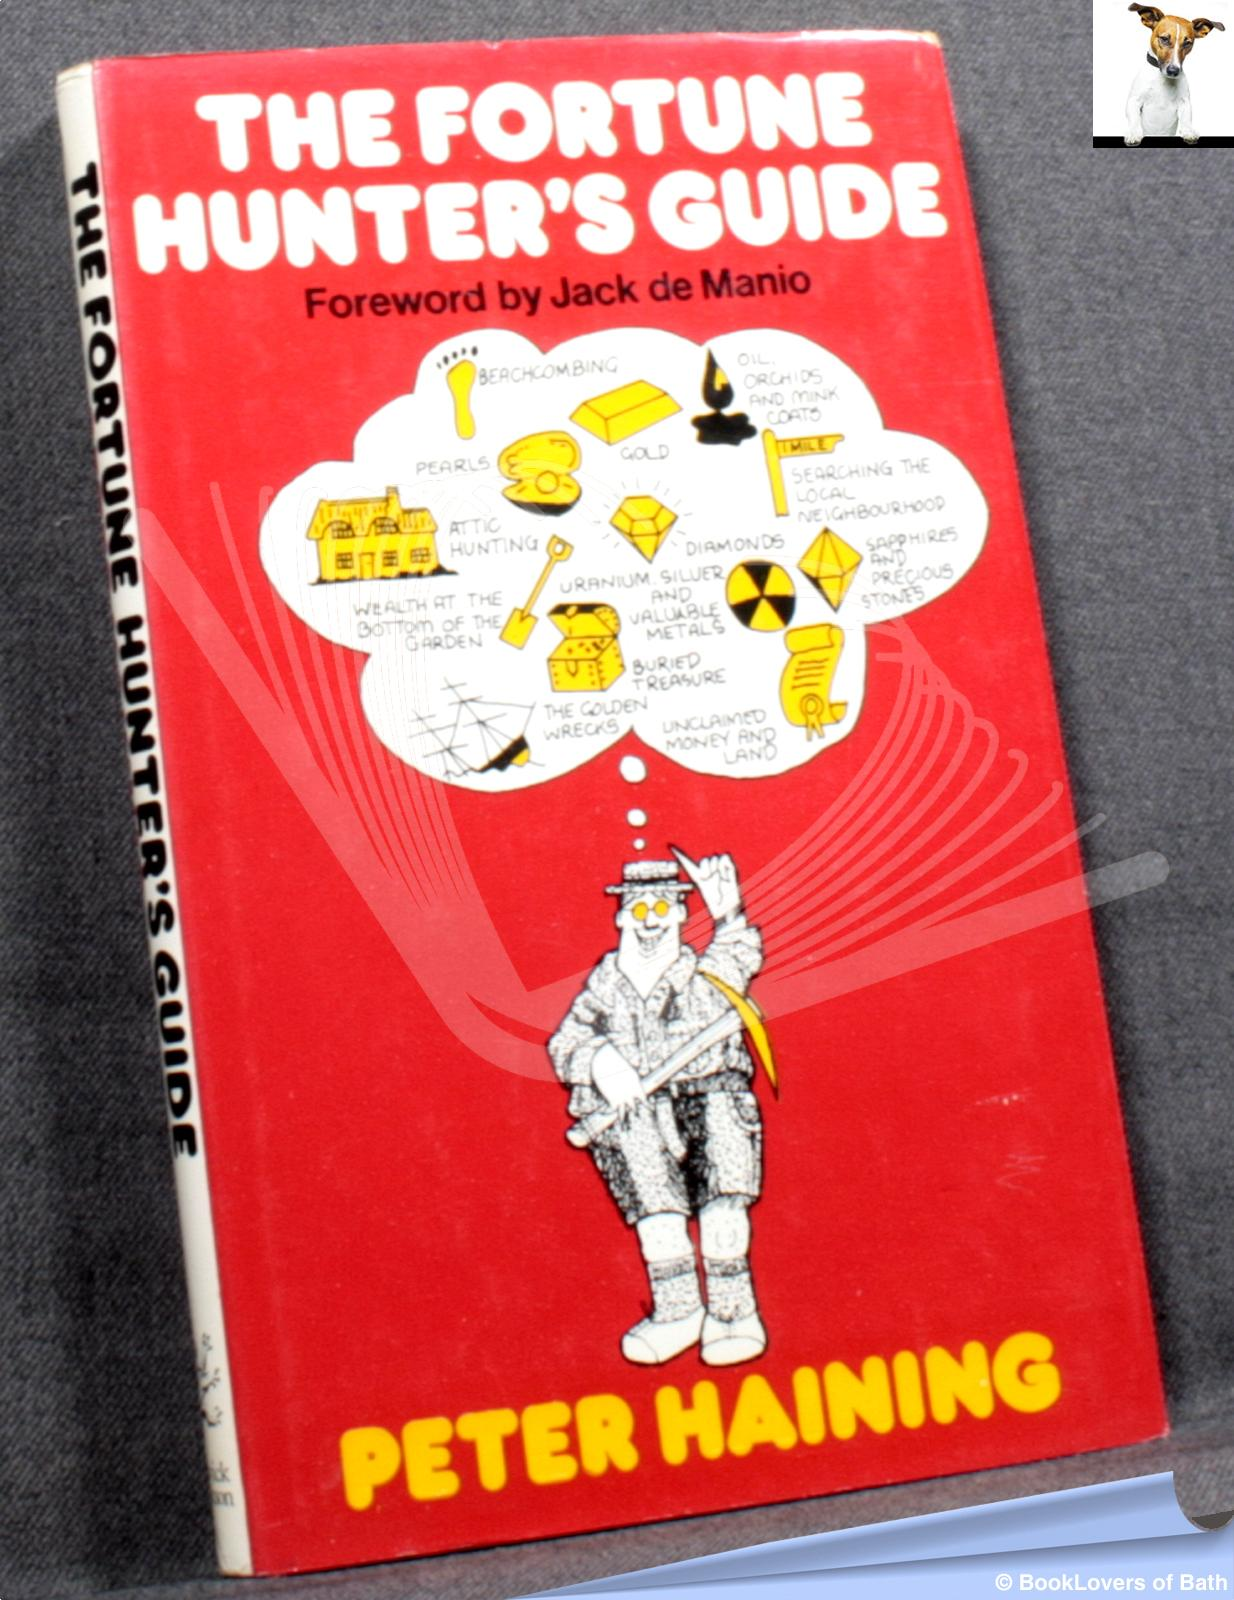 The Fortune Hunter's Guide - Peter Haining